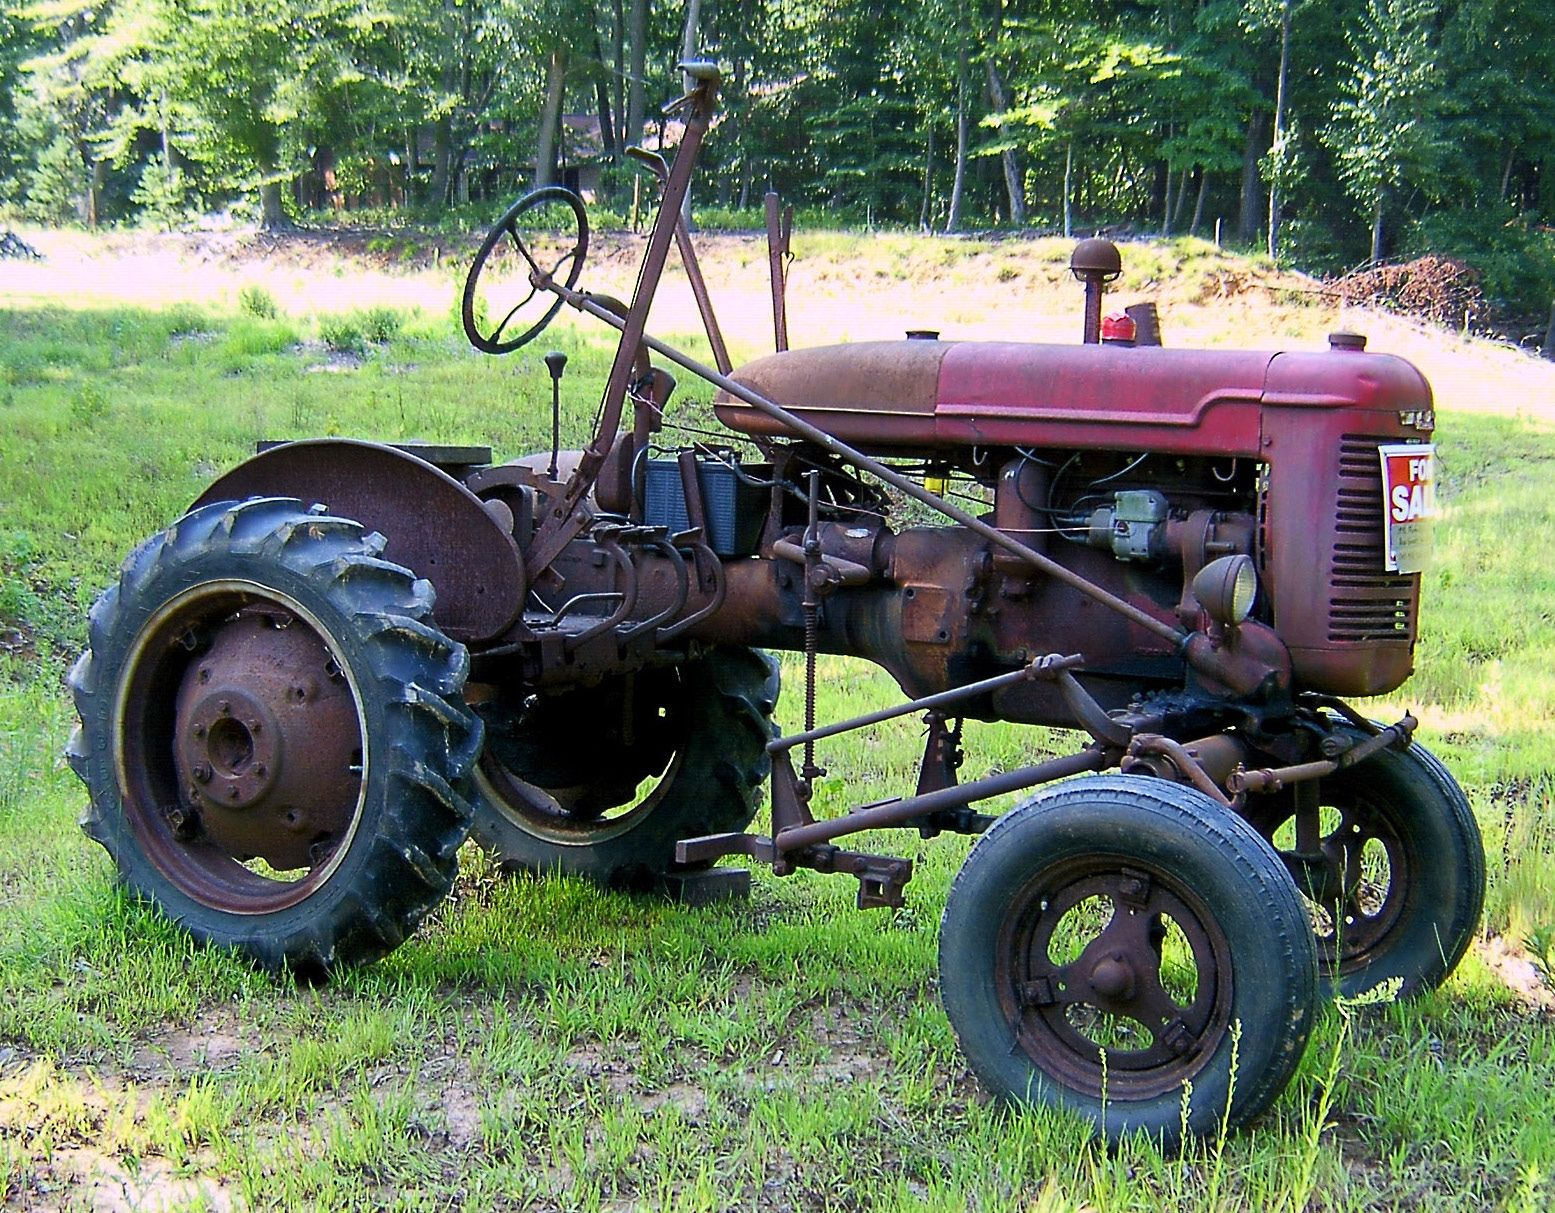 Farmall Model Super-A 1950-1954 | Antique tractors for sale, Tractors,  Antique tractors